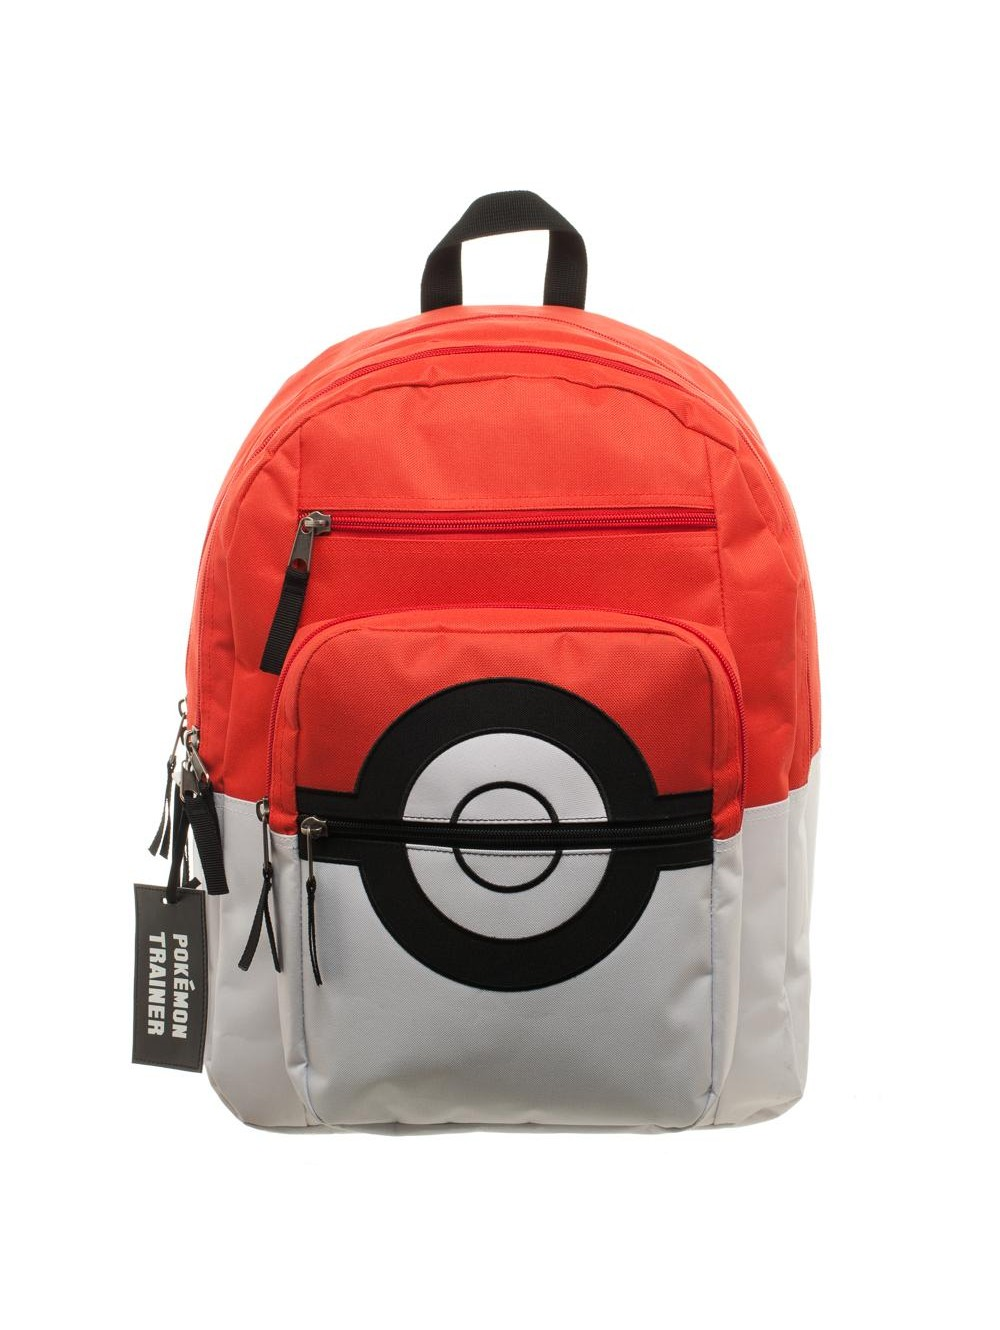 POKEMON - POKEBALL BACKPACK WITH TRAINER BAG CHARM